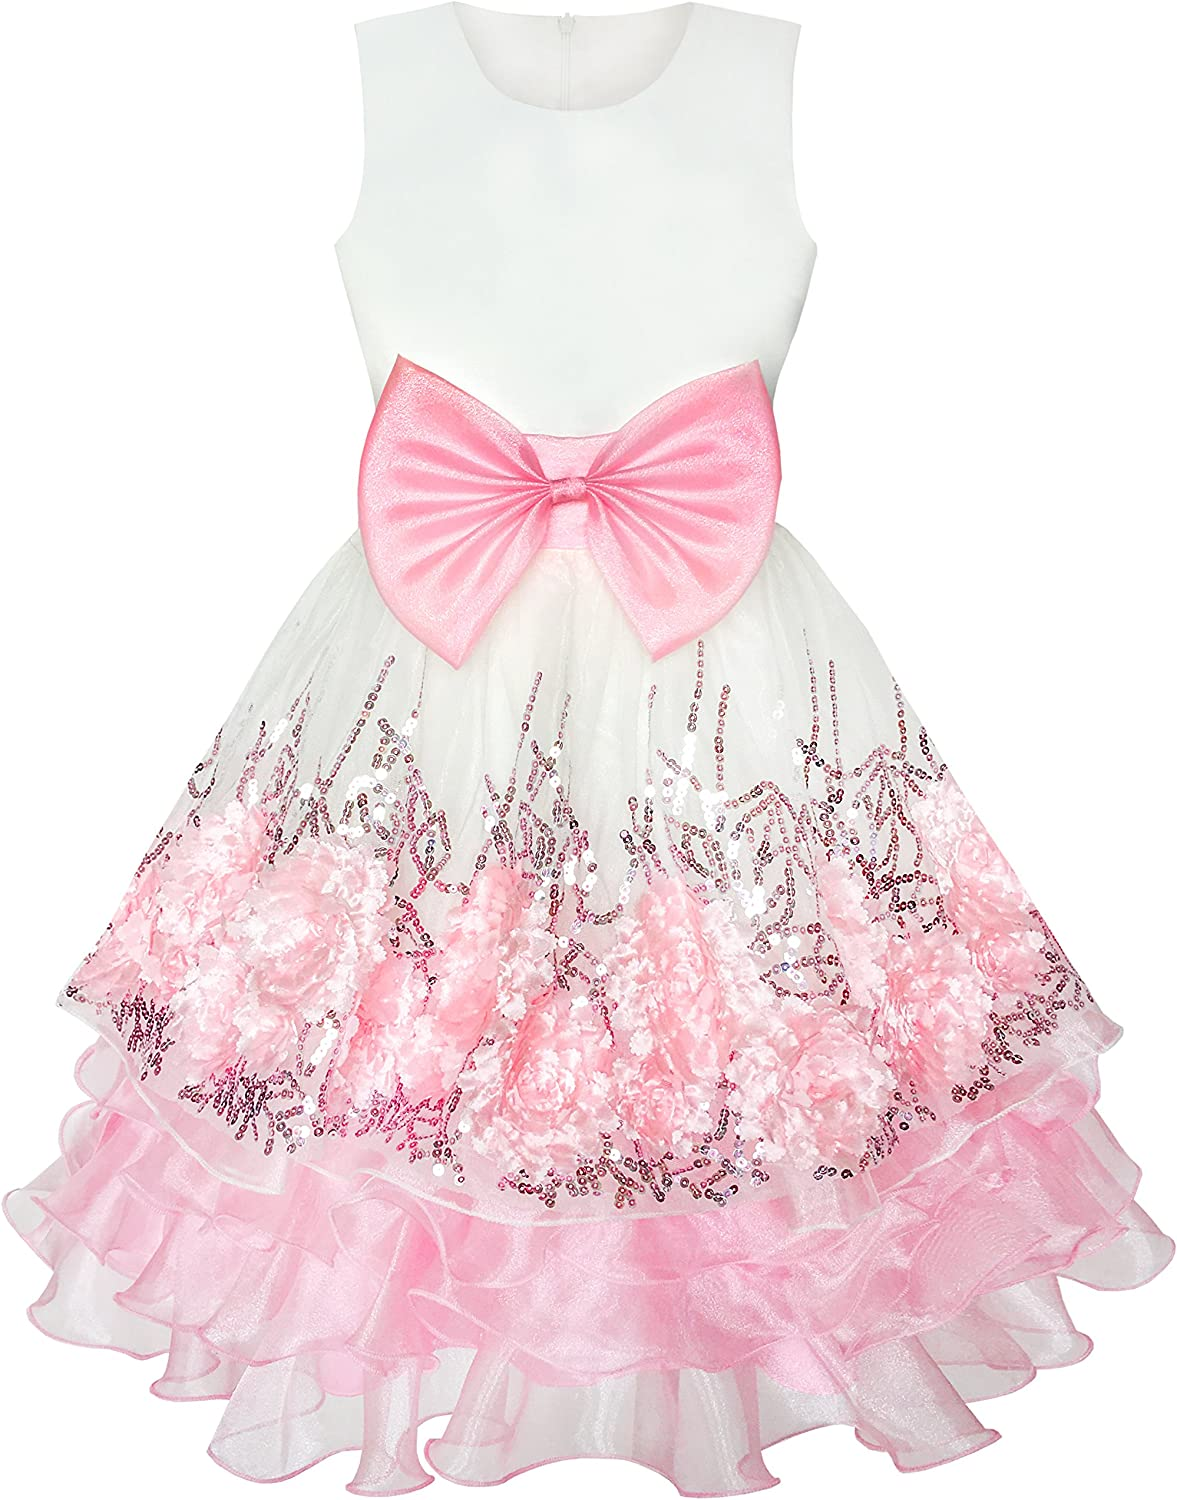 Sunny Fashion Flower Girls Dress Pink Sequin Dimensional Flowers Bow Tie Pageant